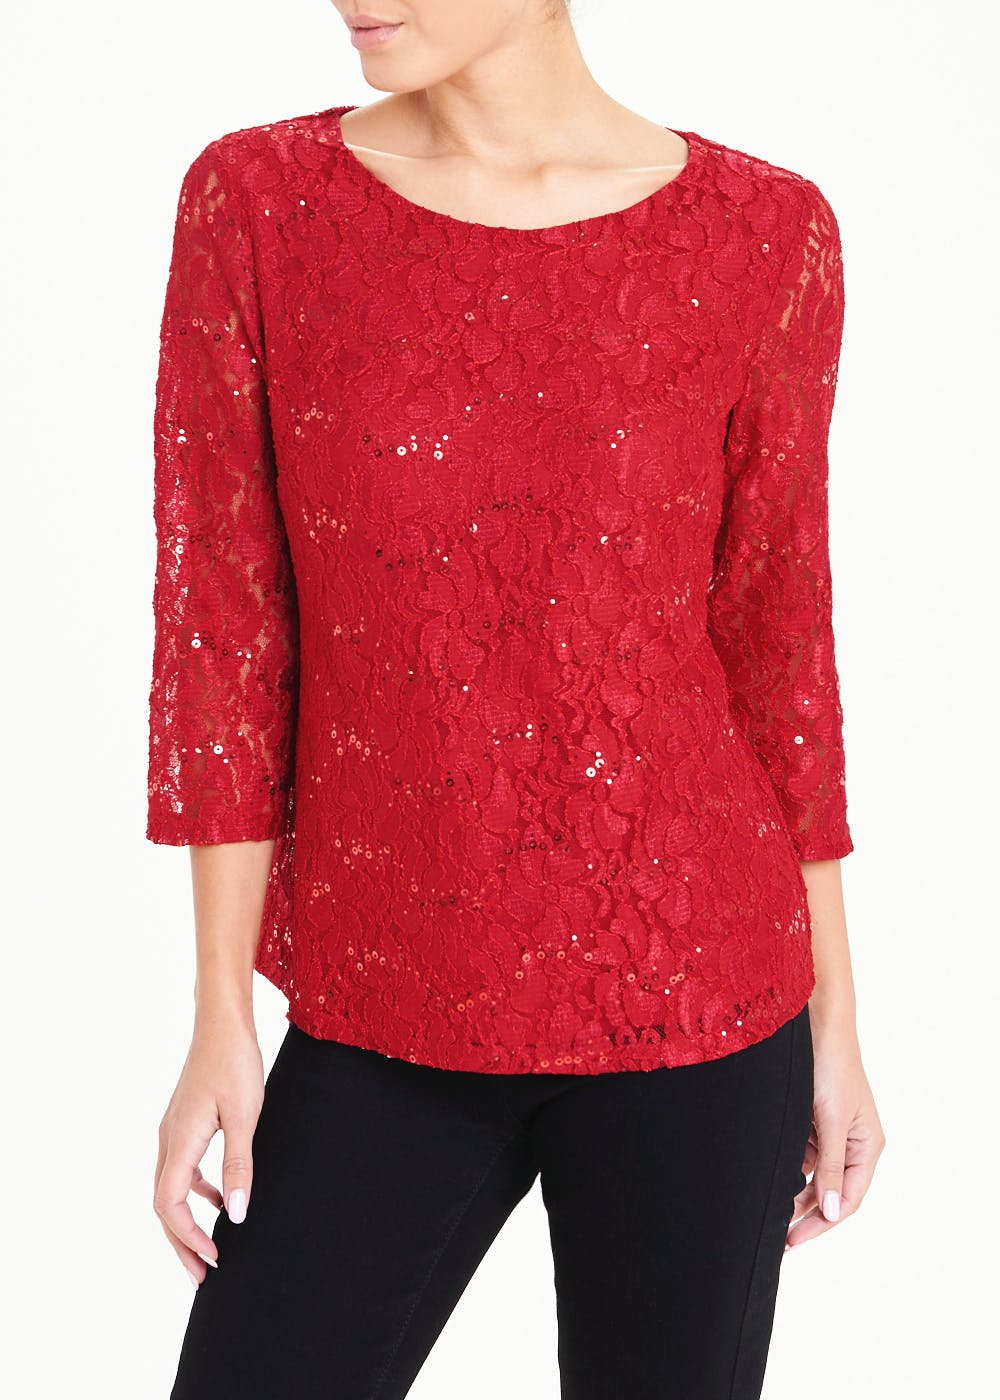 Papaya Classic Red Sequin Lace Top – Red